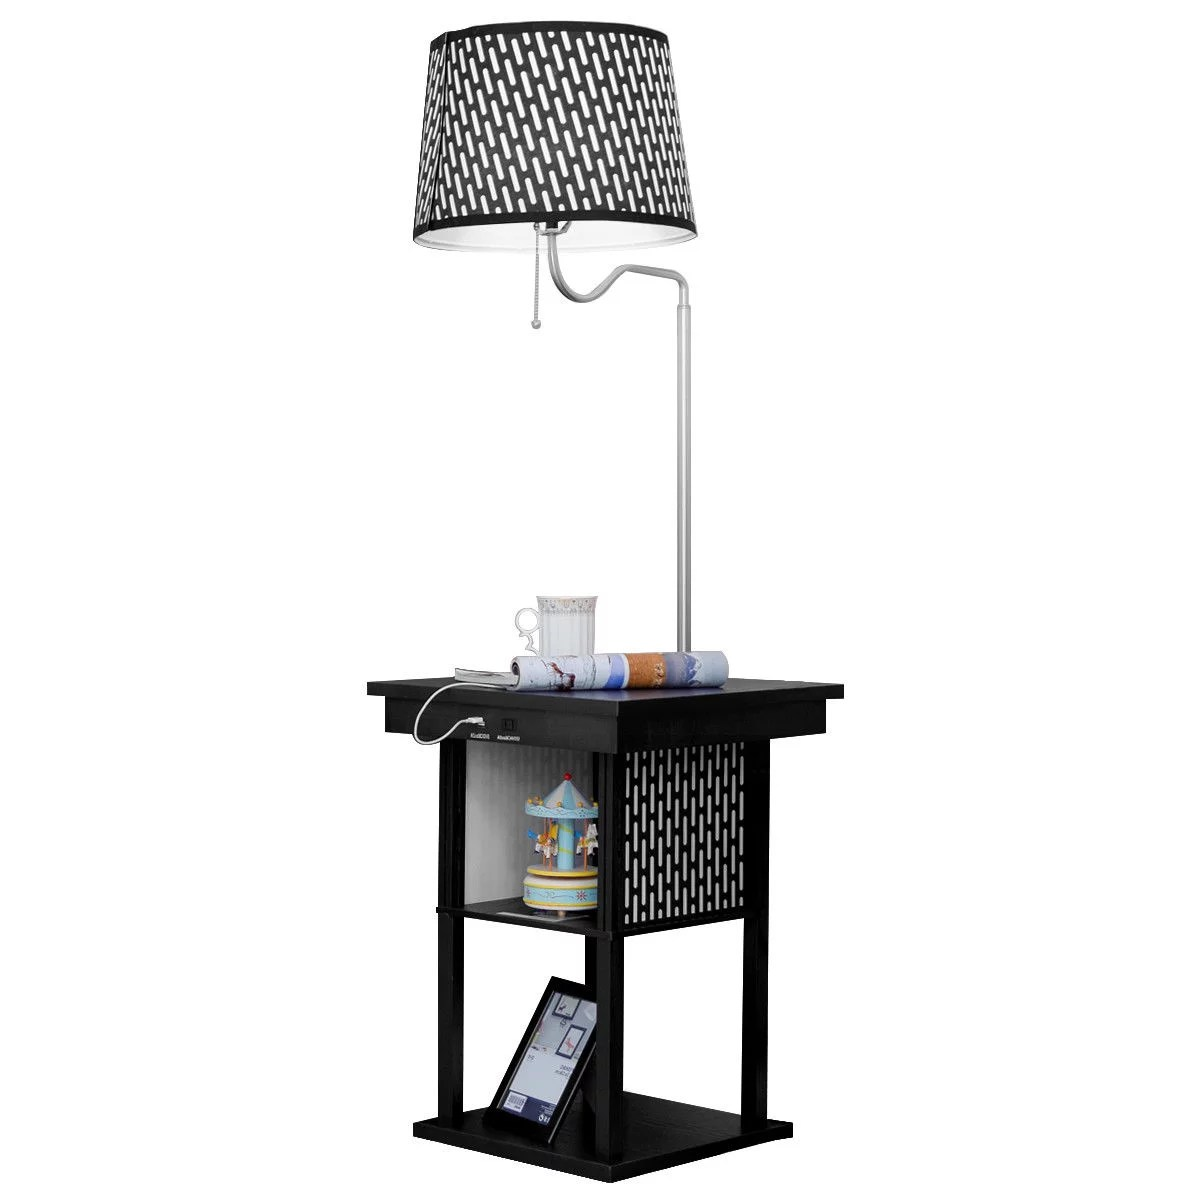 Arm Lamp Gymax Floor Lamp Swing Arm Lamp Built In End Table W Shade 2 Usb Ports Living Room